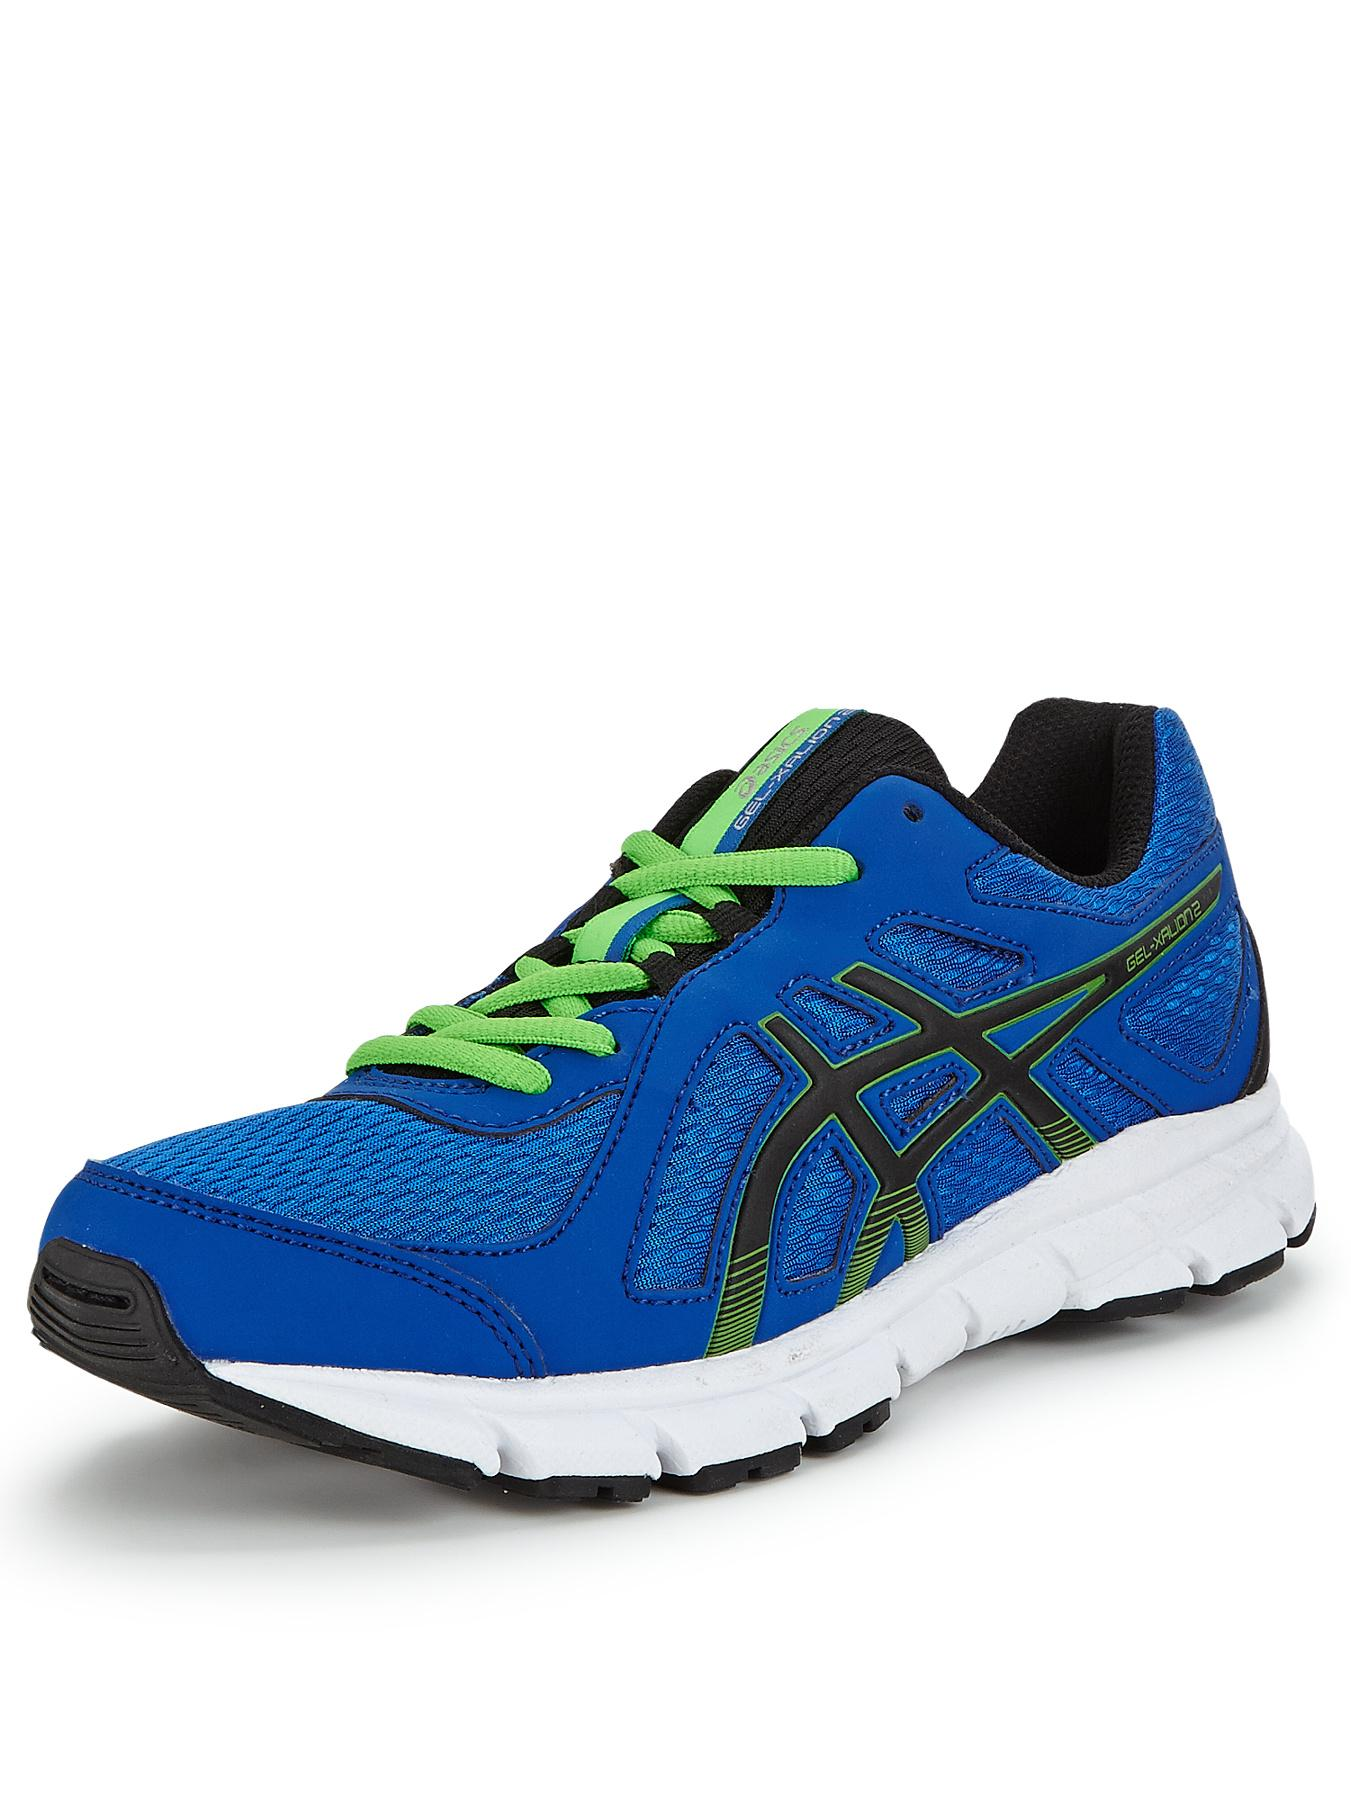 Asics Gel-Xalion 2 Junior Trainers - Blue, Blue